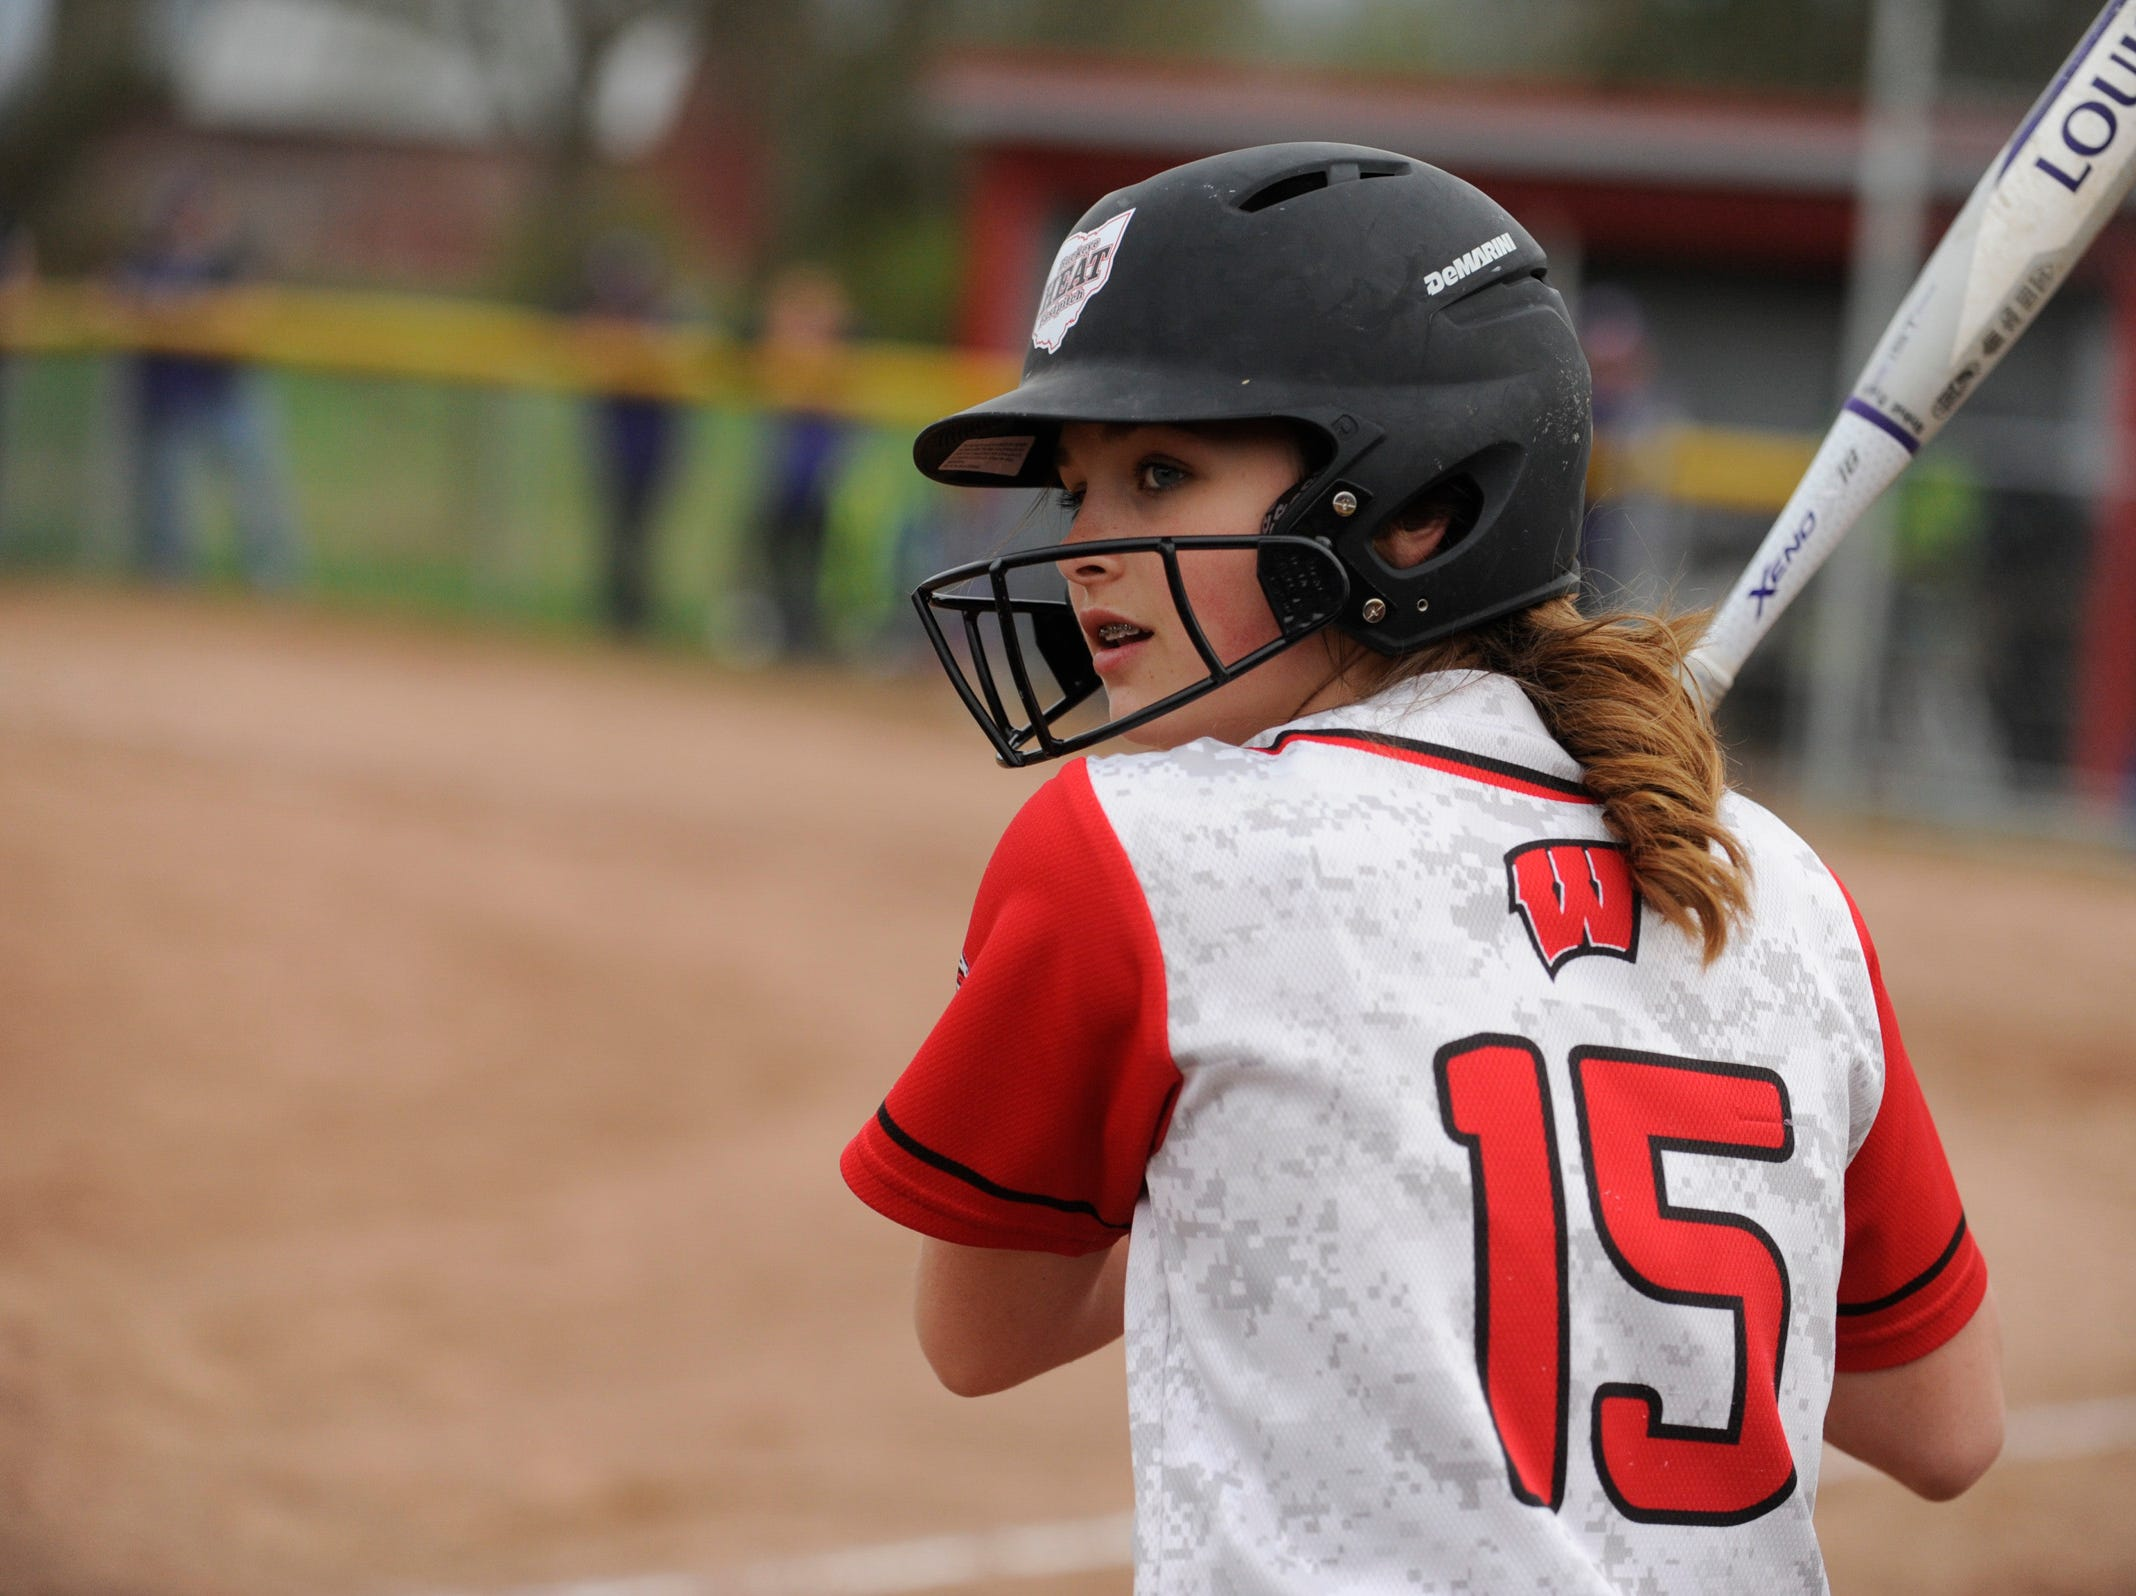 Westfall defeated Unioto 8-3 Friday night at Westfall High School, making Westfall softball atop the SVC.